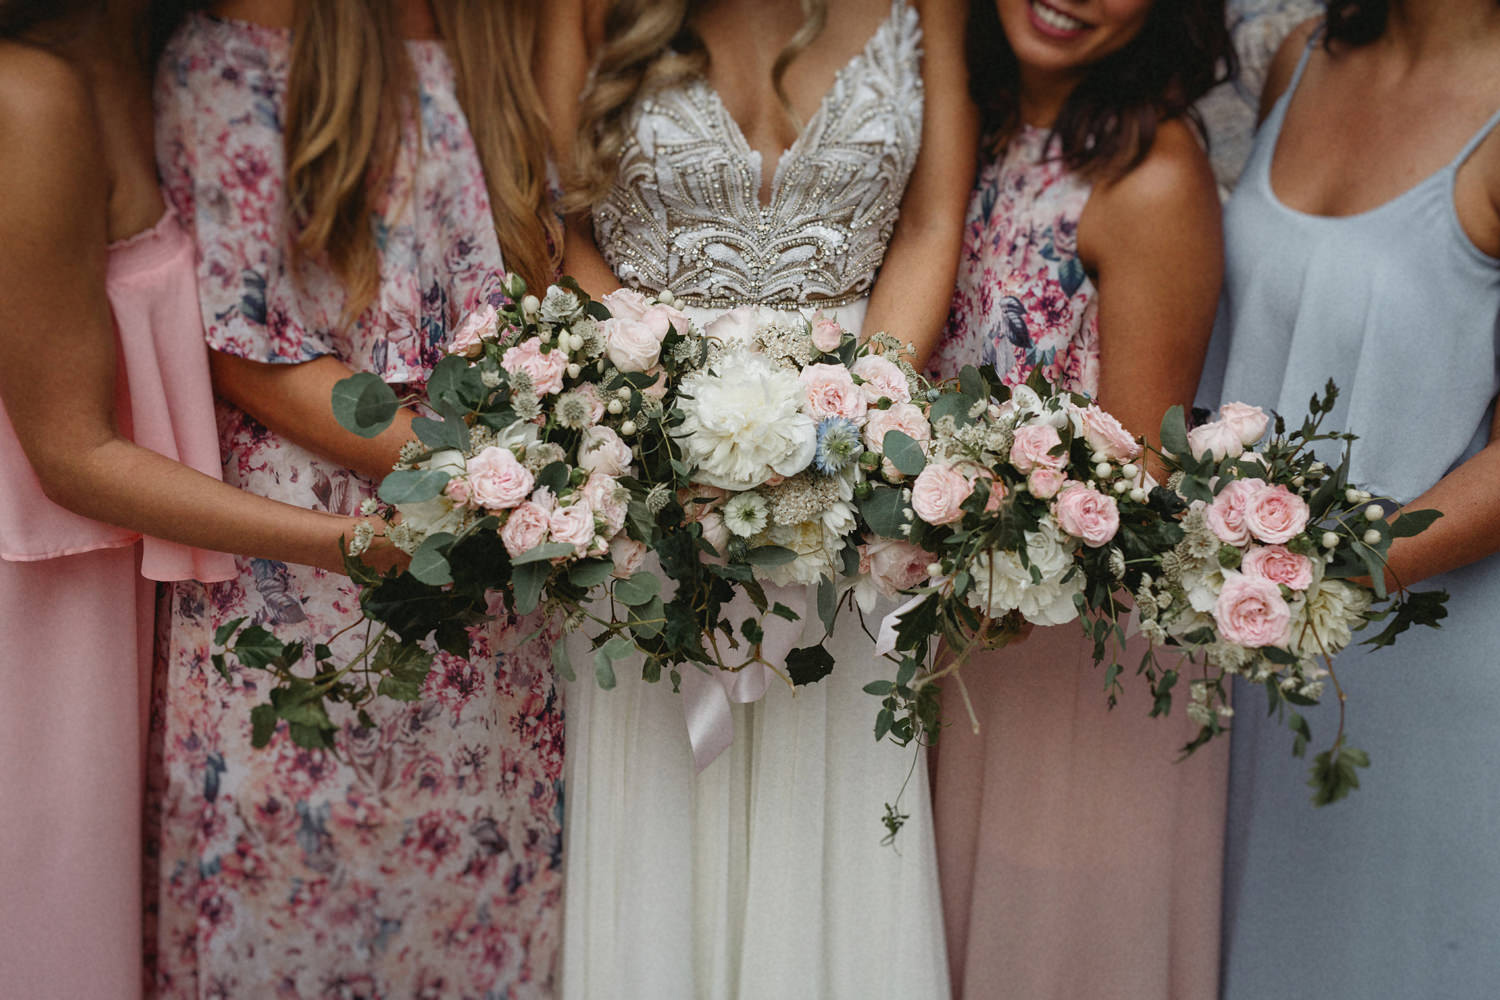 bride and bridesmaids holding their bouquet in lisbon wedding portugal